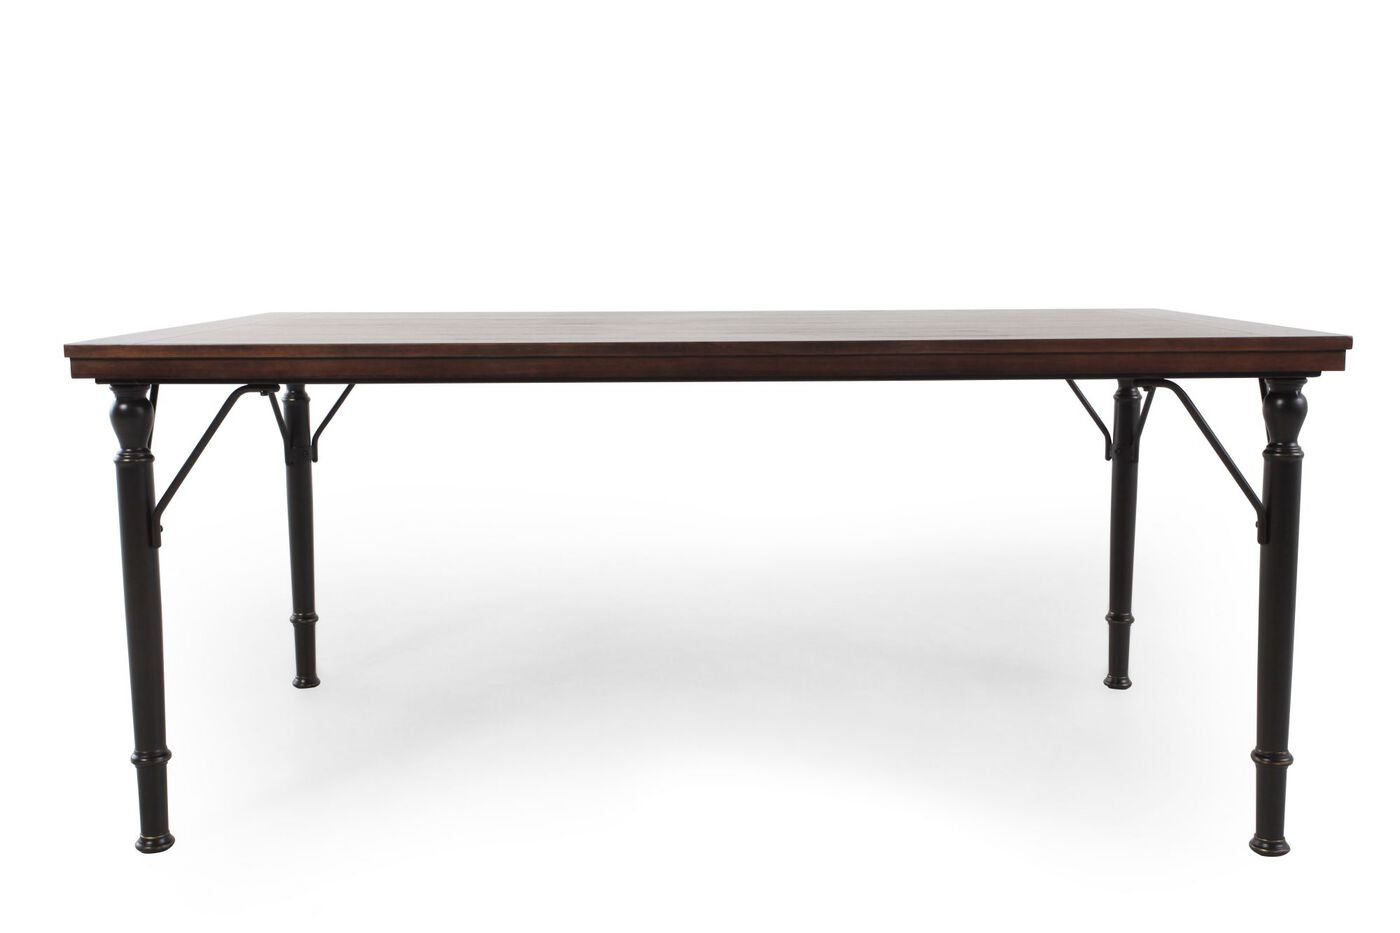 Plank Top Dining Tables Gallery Dining Table Ideas : ASH D53004725 from sorahana.info size 1400 x 933 jpeg 39kB